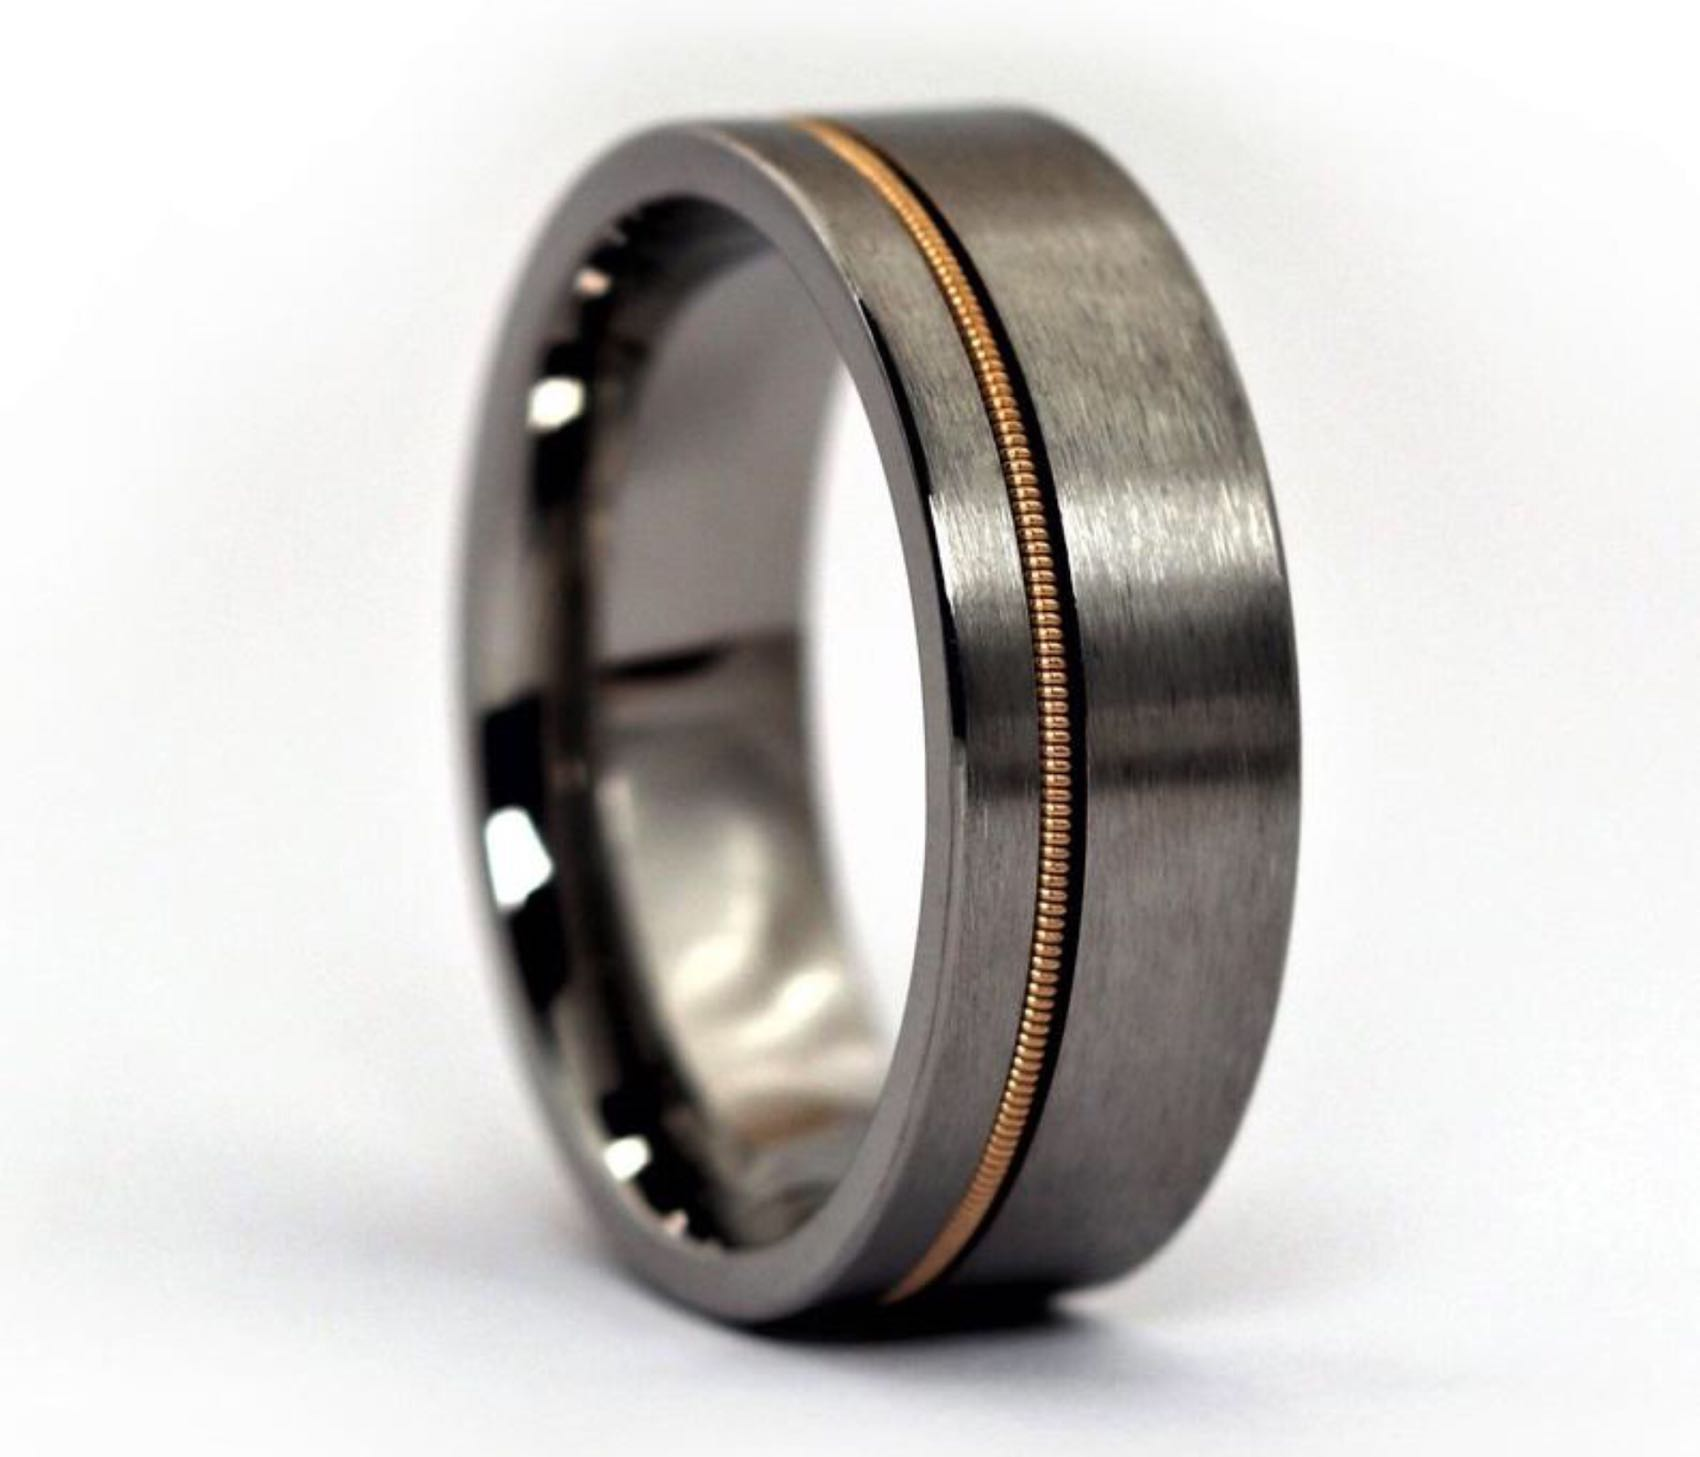 Anvil Rings guitar string ring. ($95 for black tungsten, $155 for titanium)